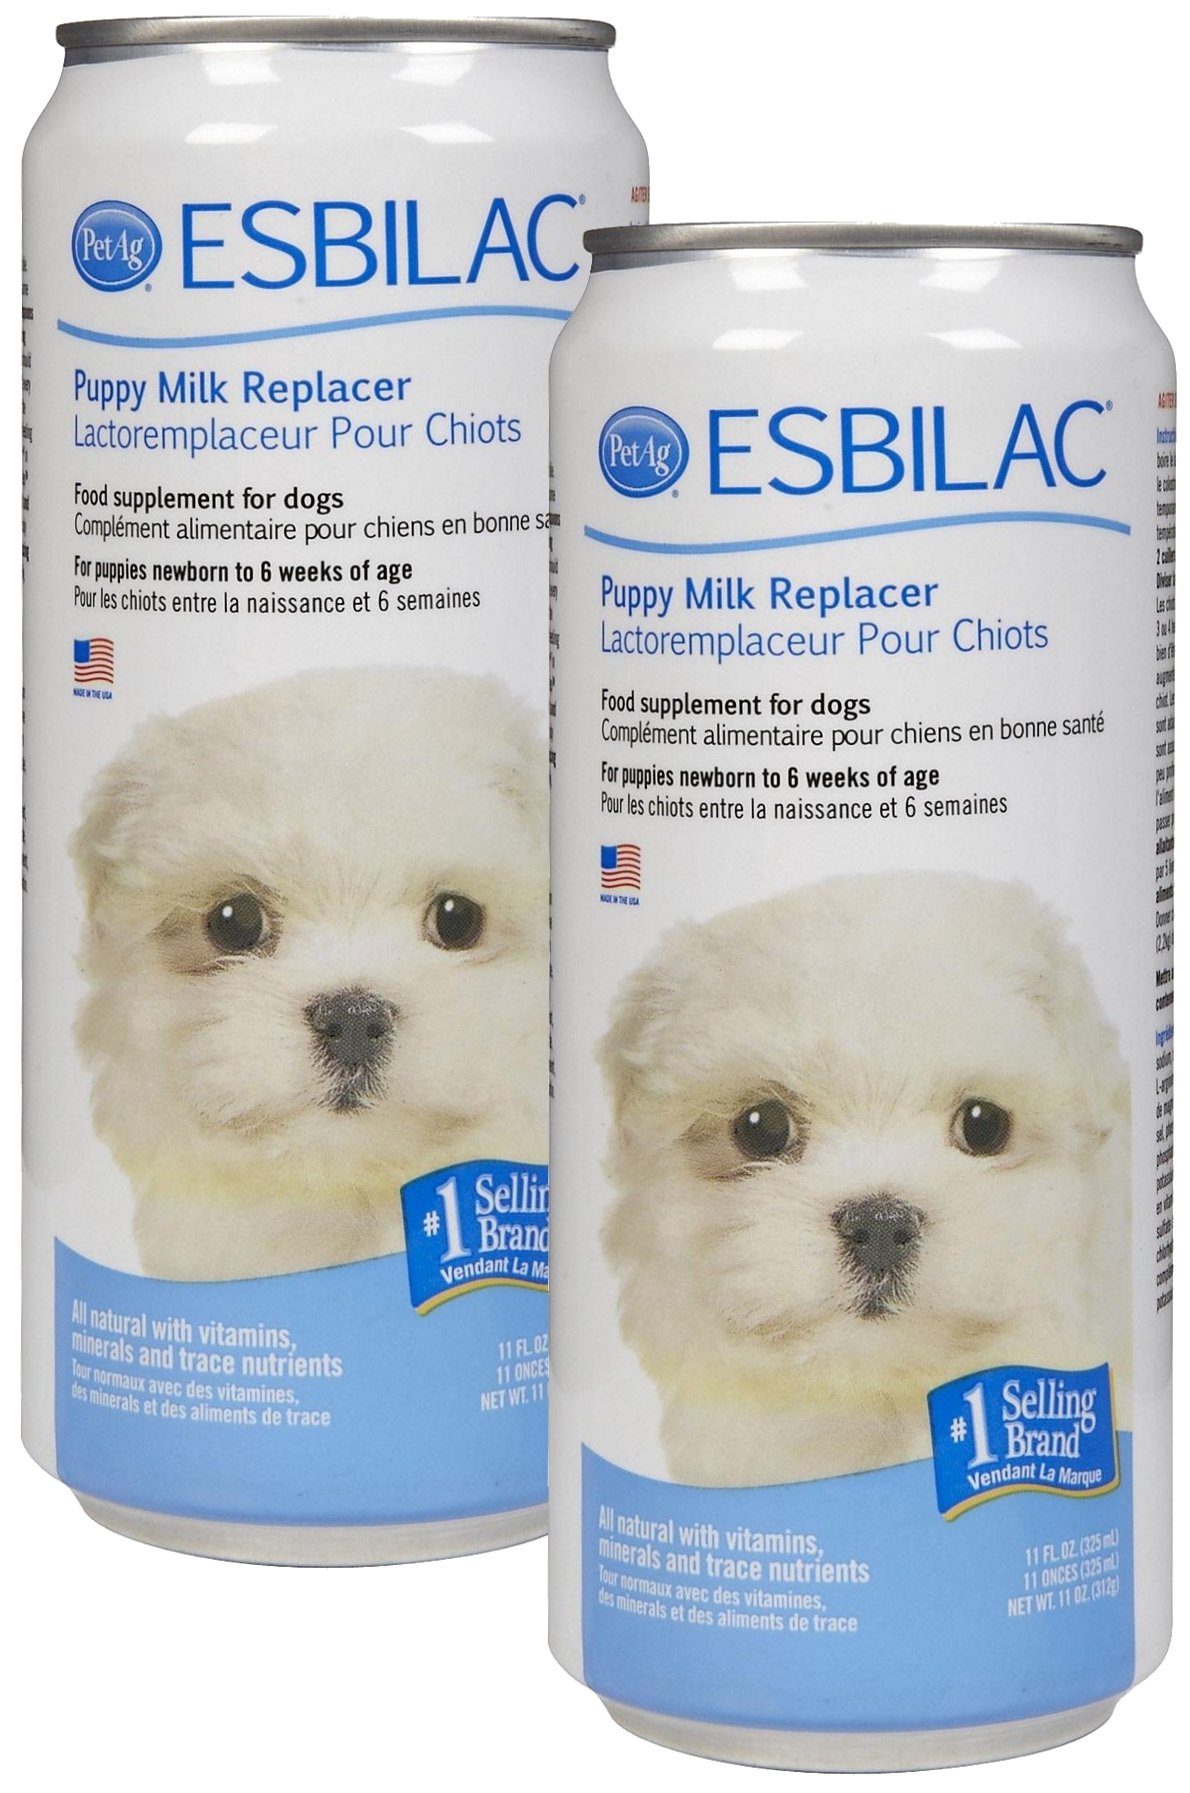 Esbilac Liquid Milk Replacer for Puppies & Dogs, 11oz Can, 2-Pack